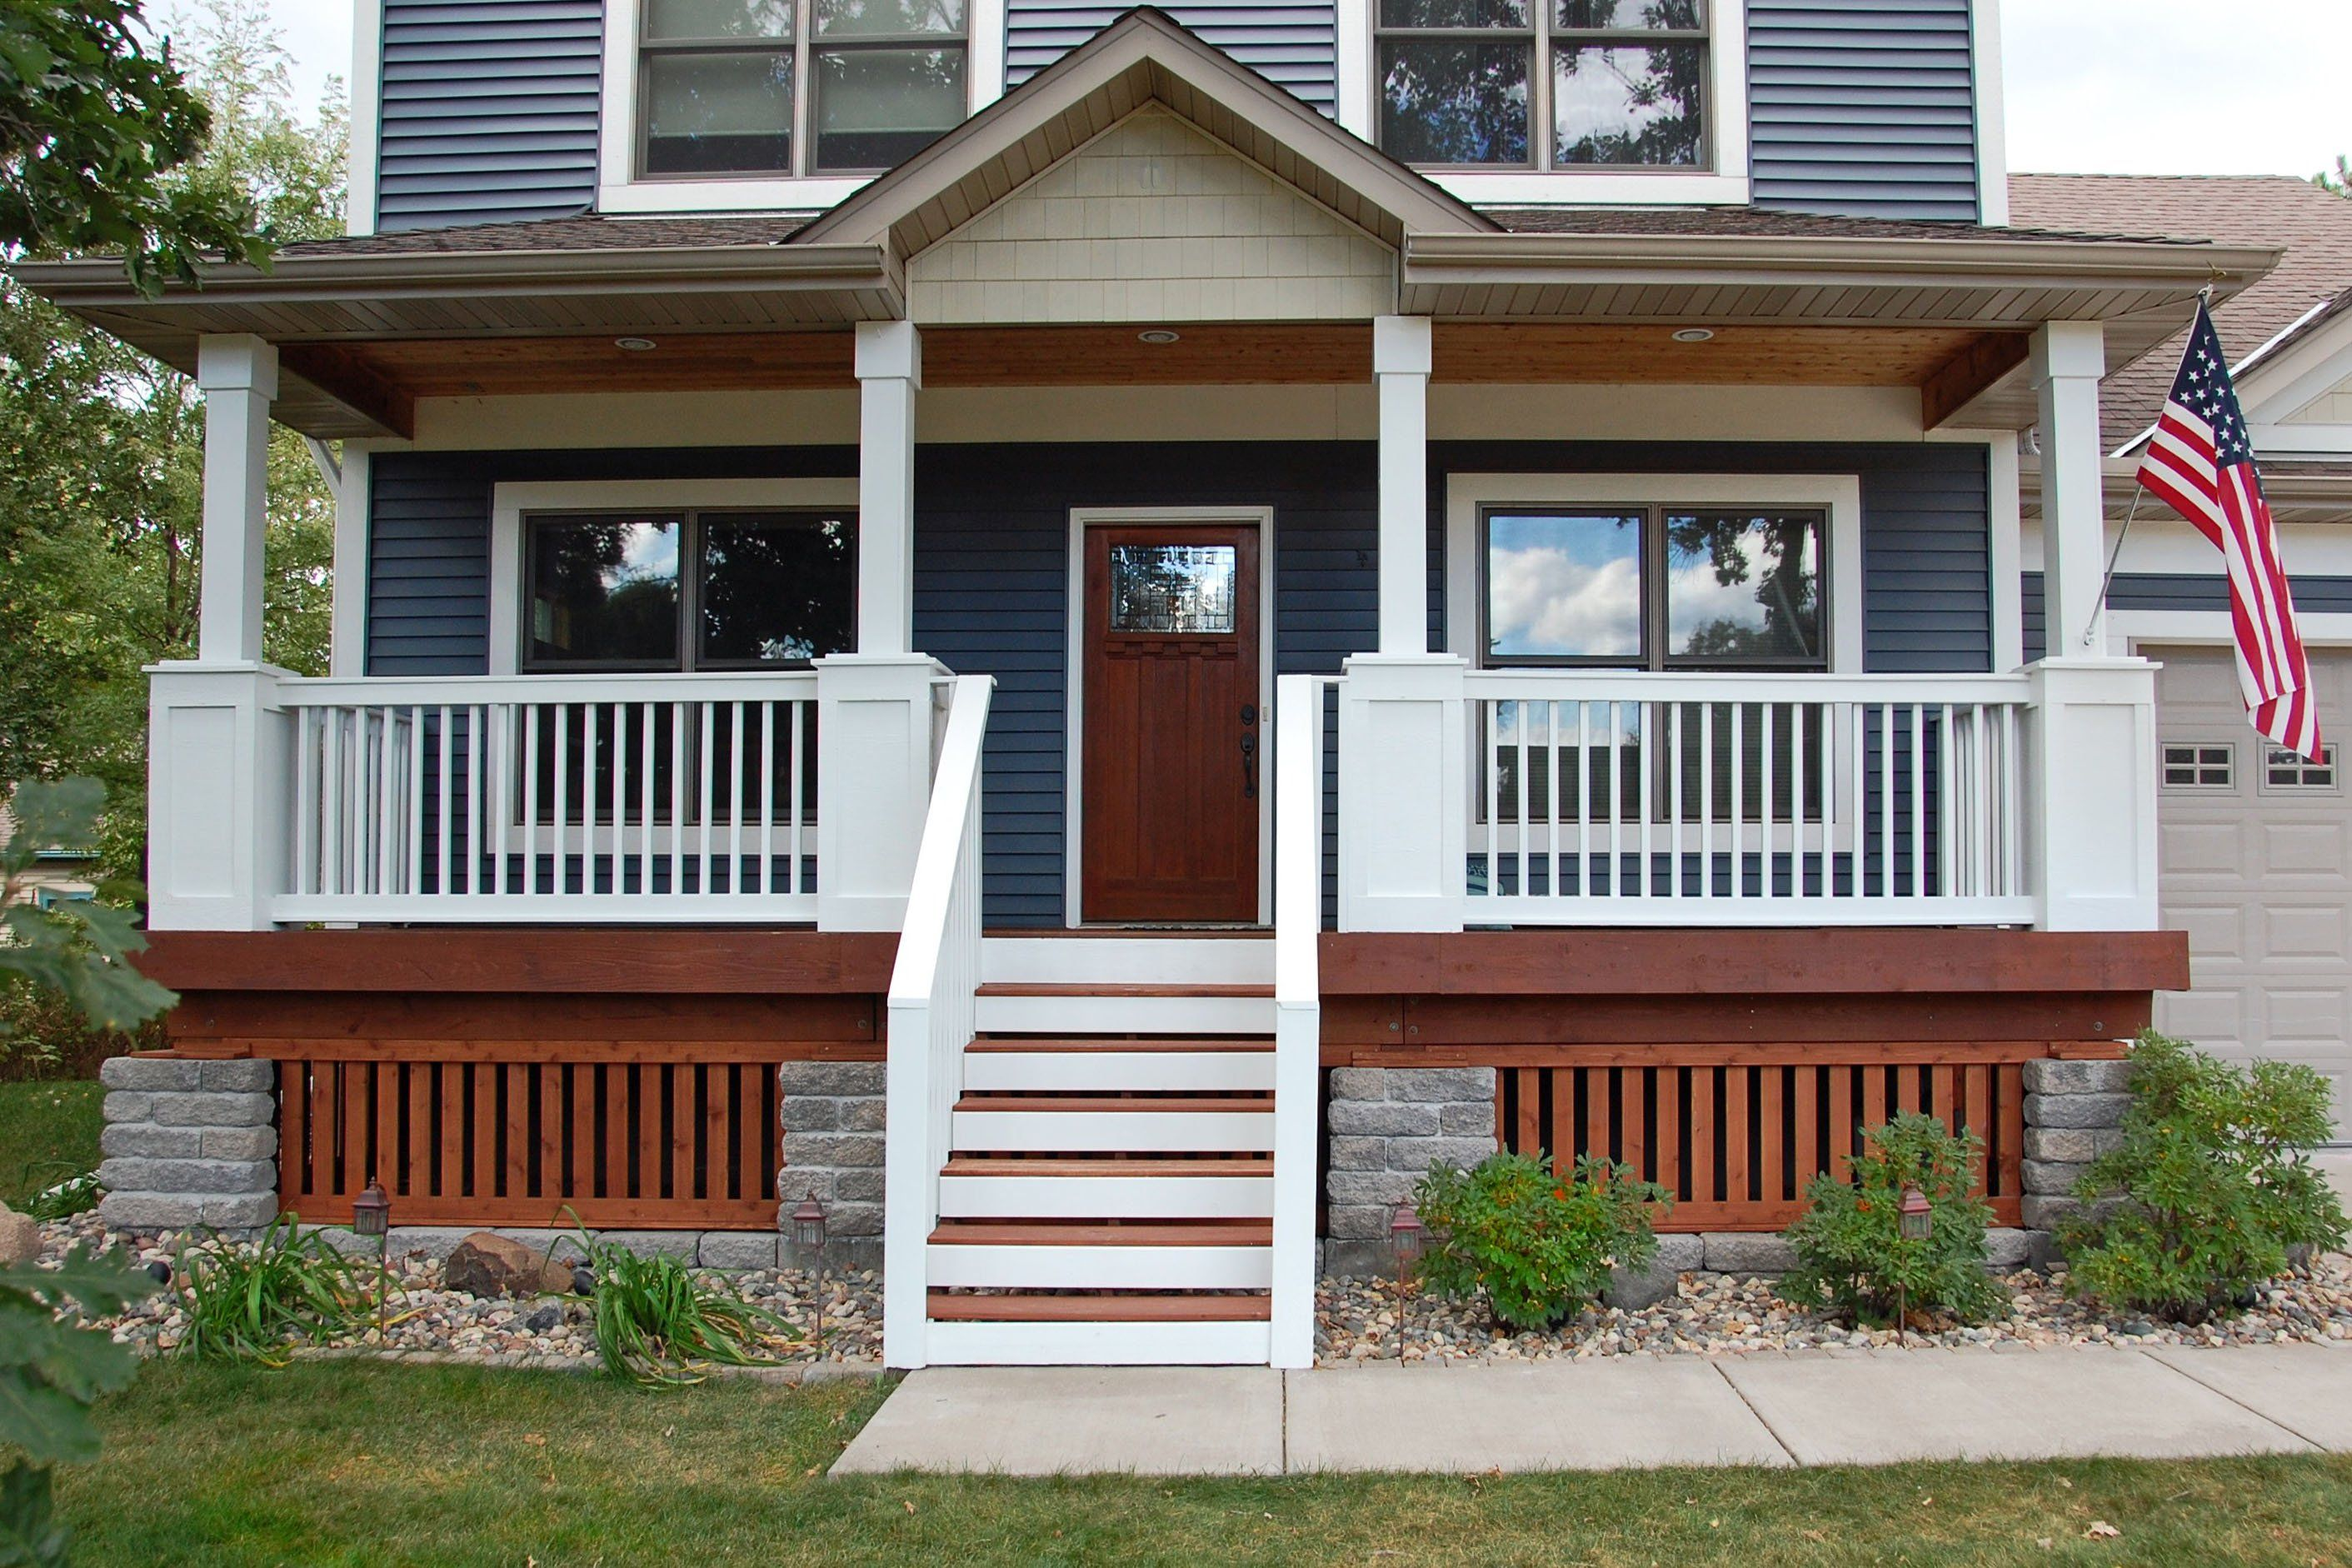 Marvelous White Wood Paint Exterior Part - 10: Exterior. Brown Wooden Porch With White Wooden Railing Also Wooden Stair  Plus White Pillar With